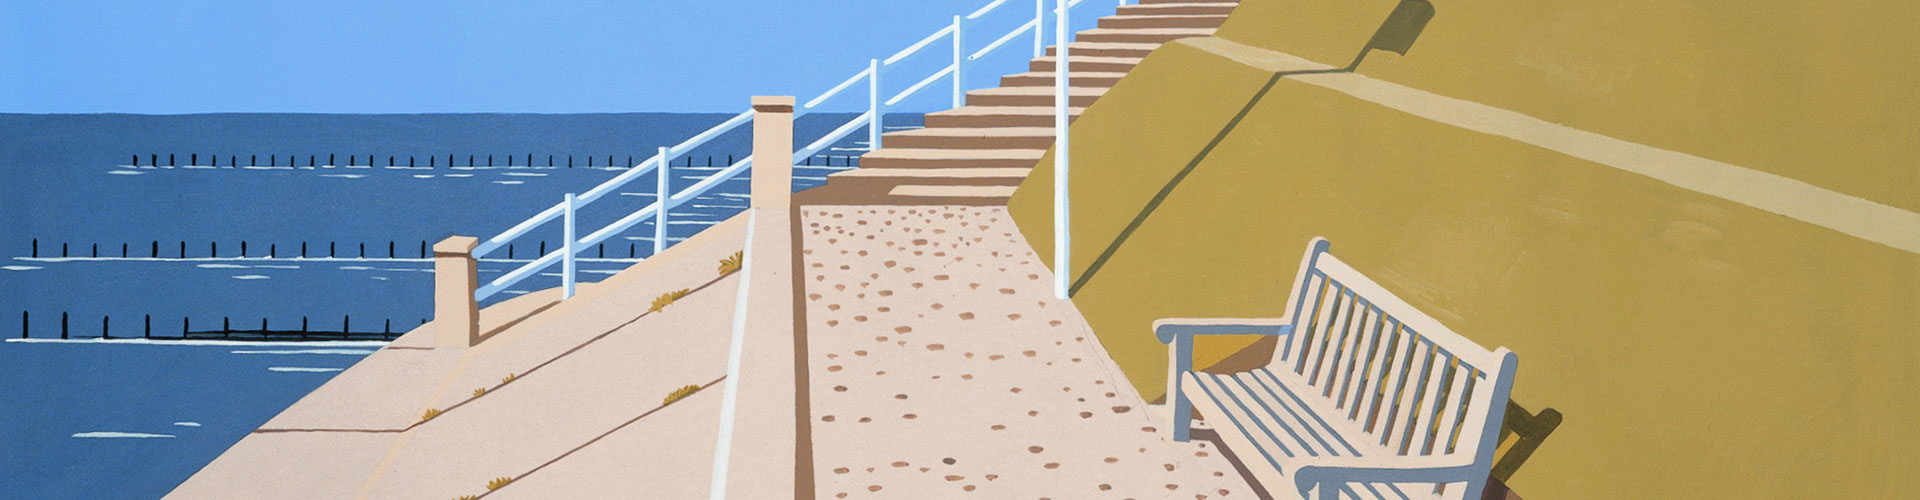 Southwold, Suffolk, Greeting Card by David Kirk - Featured on Desktop Devices